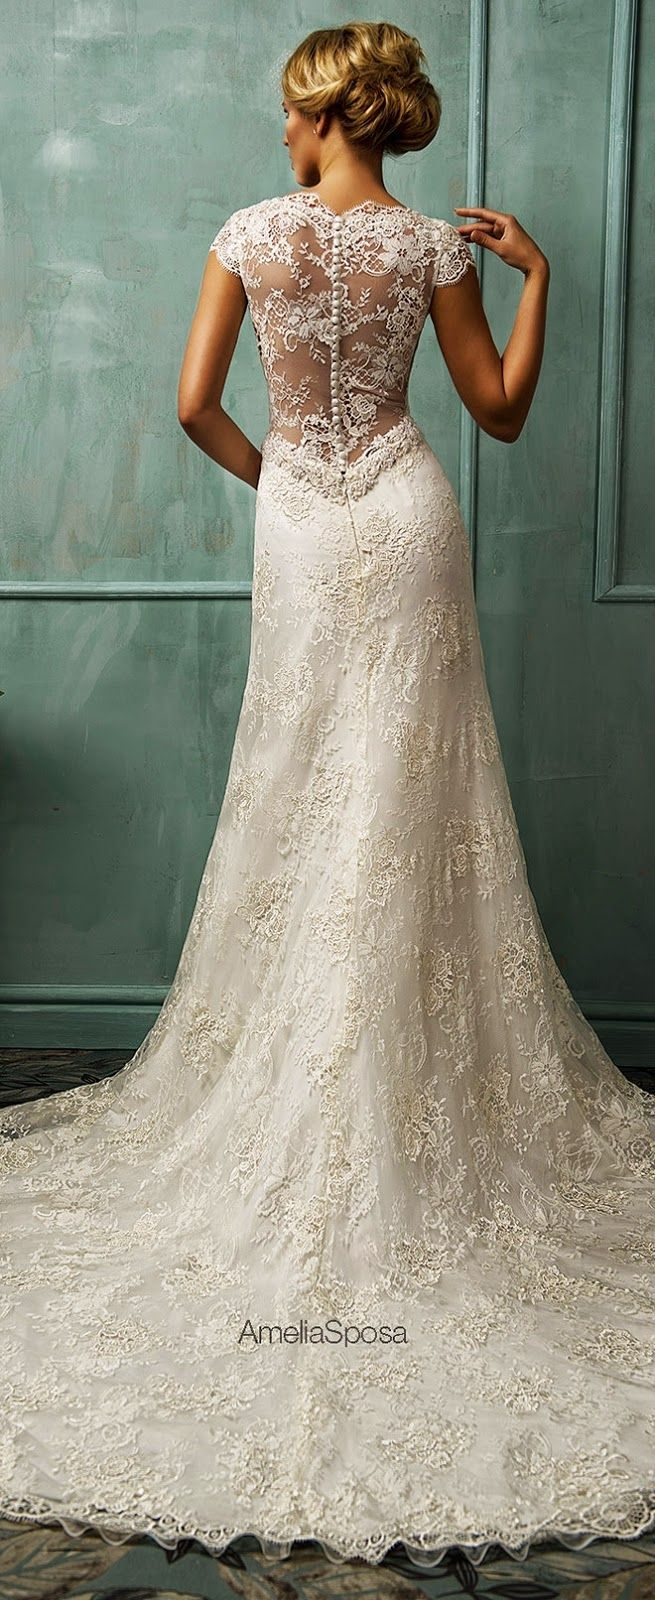 Lovely lace back my big day pinterest amelia sposa amelia and